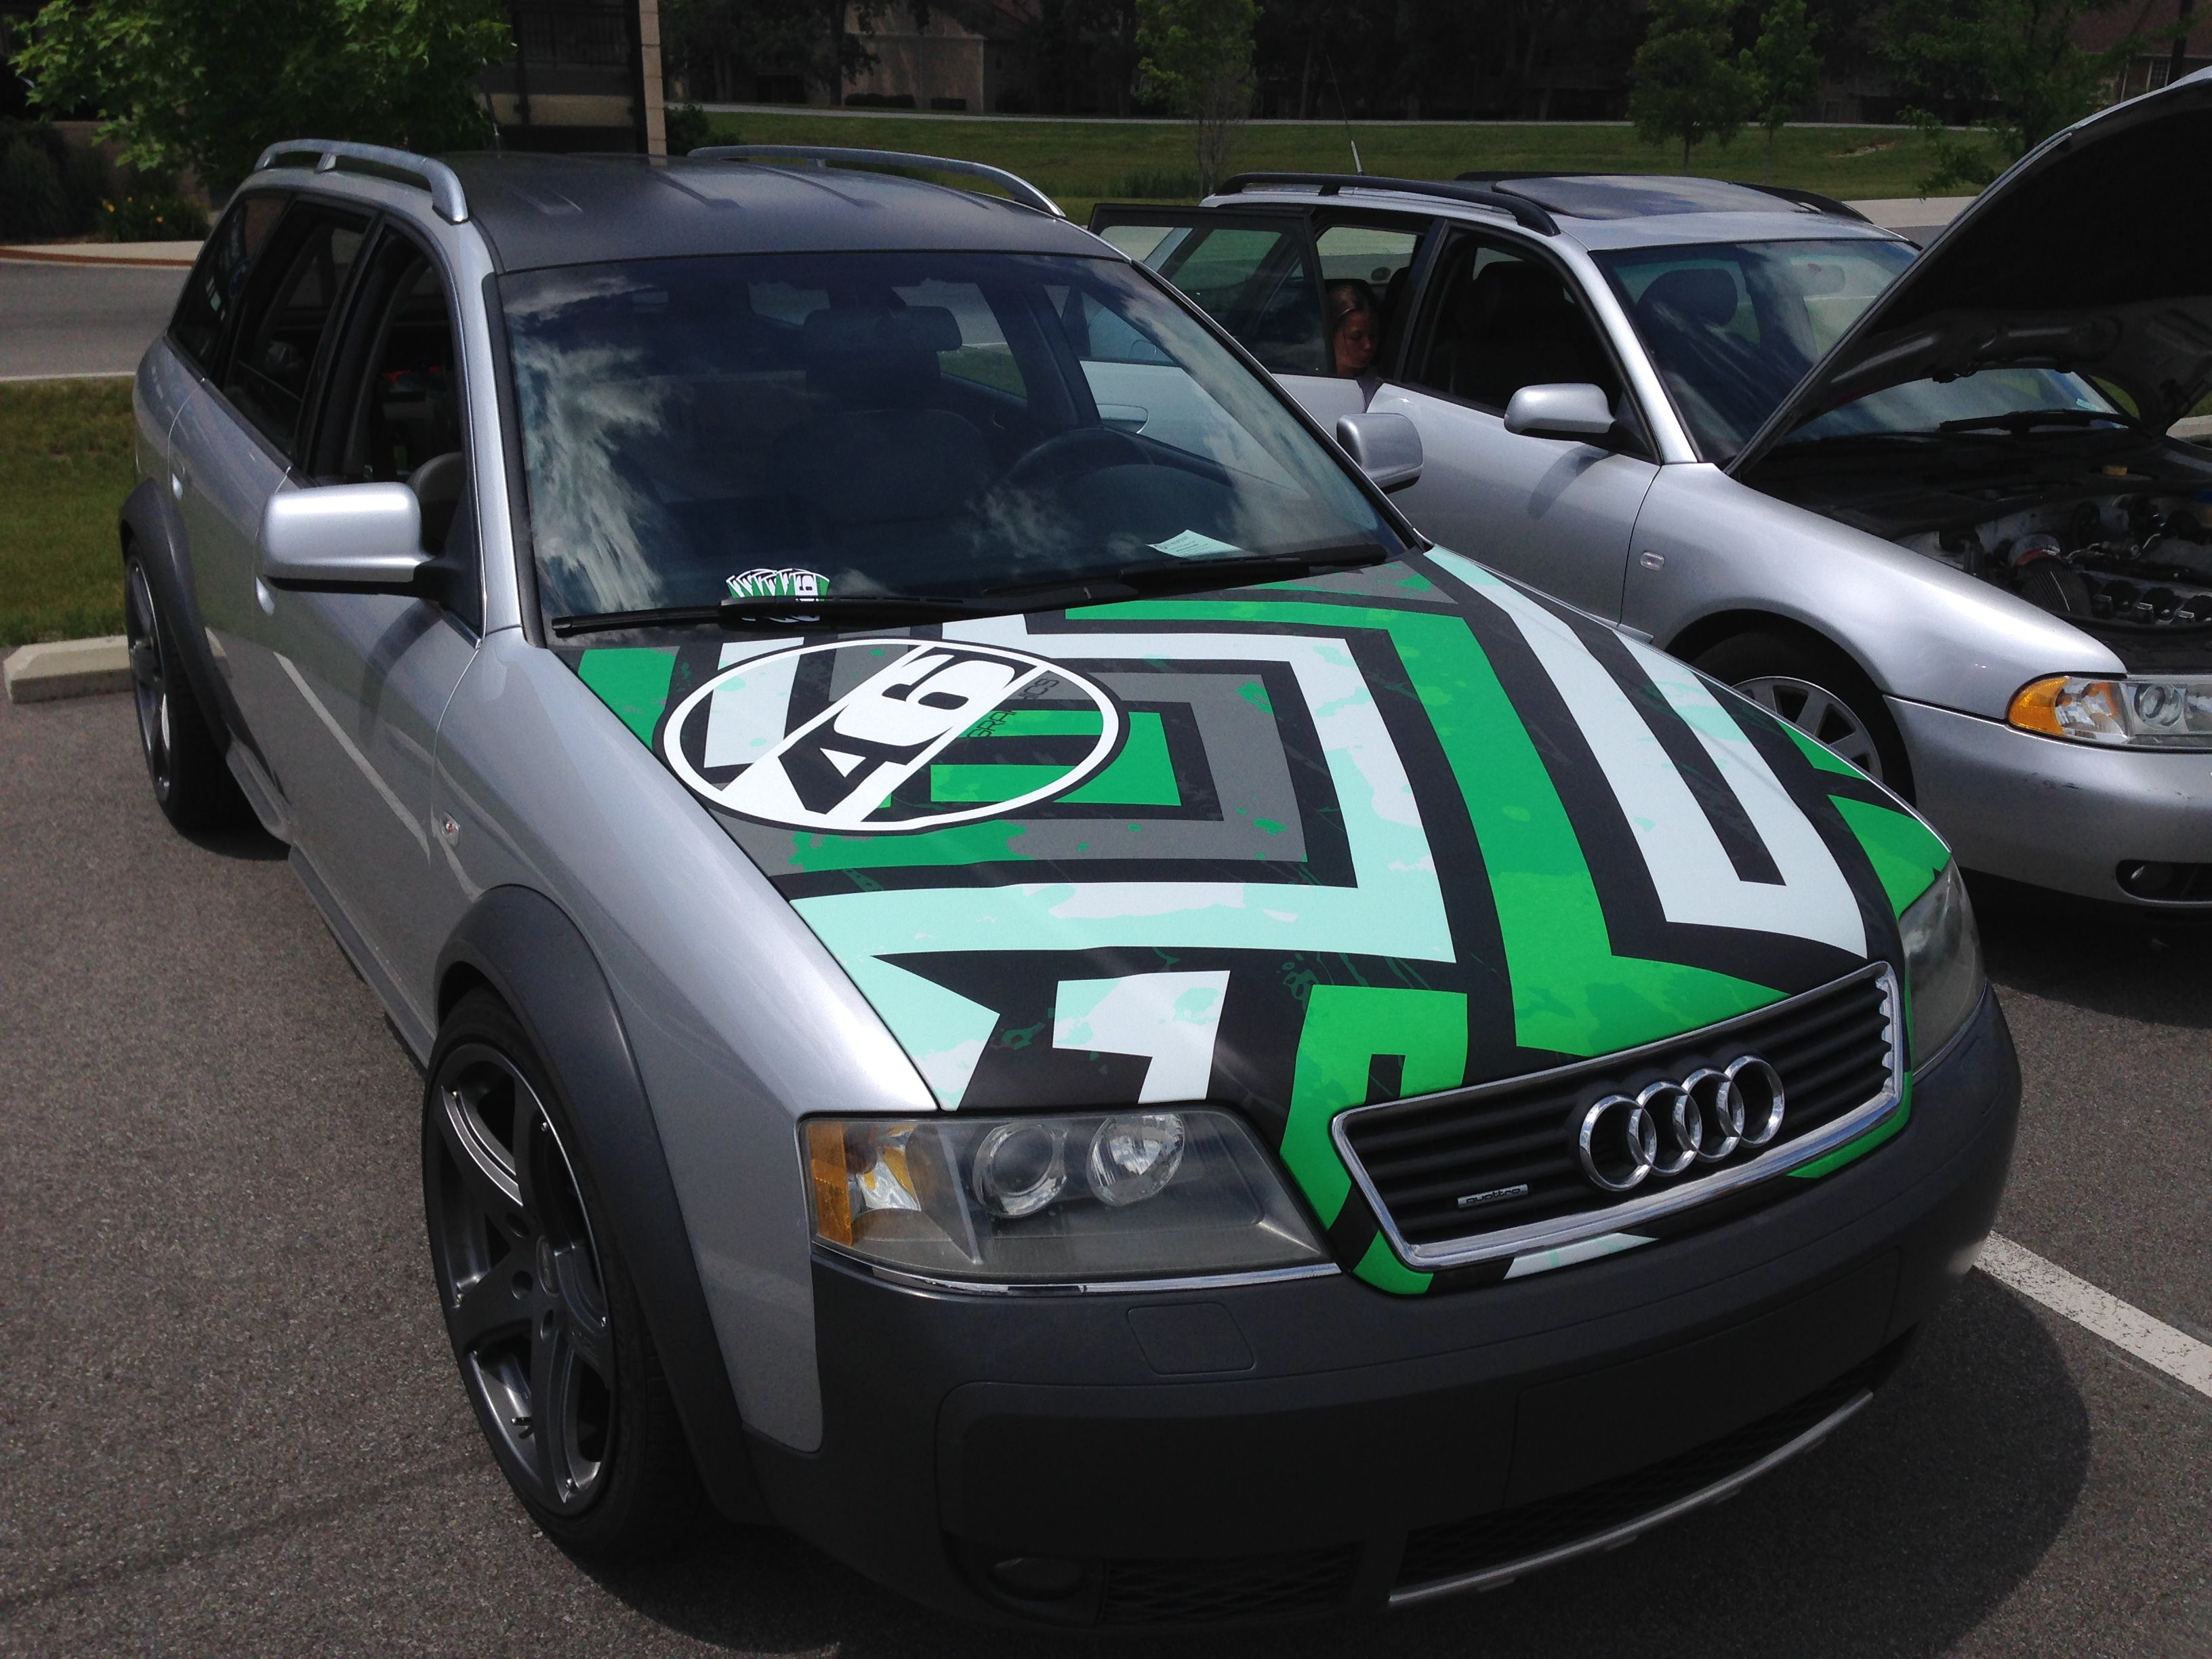 Custom Hood Wrap Really Changed The Look Of This Audi Allroad - Best automobile graphics and patternsbest stickers on the car hood images on pinterest cars hoods